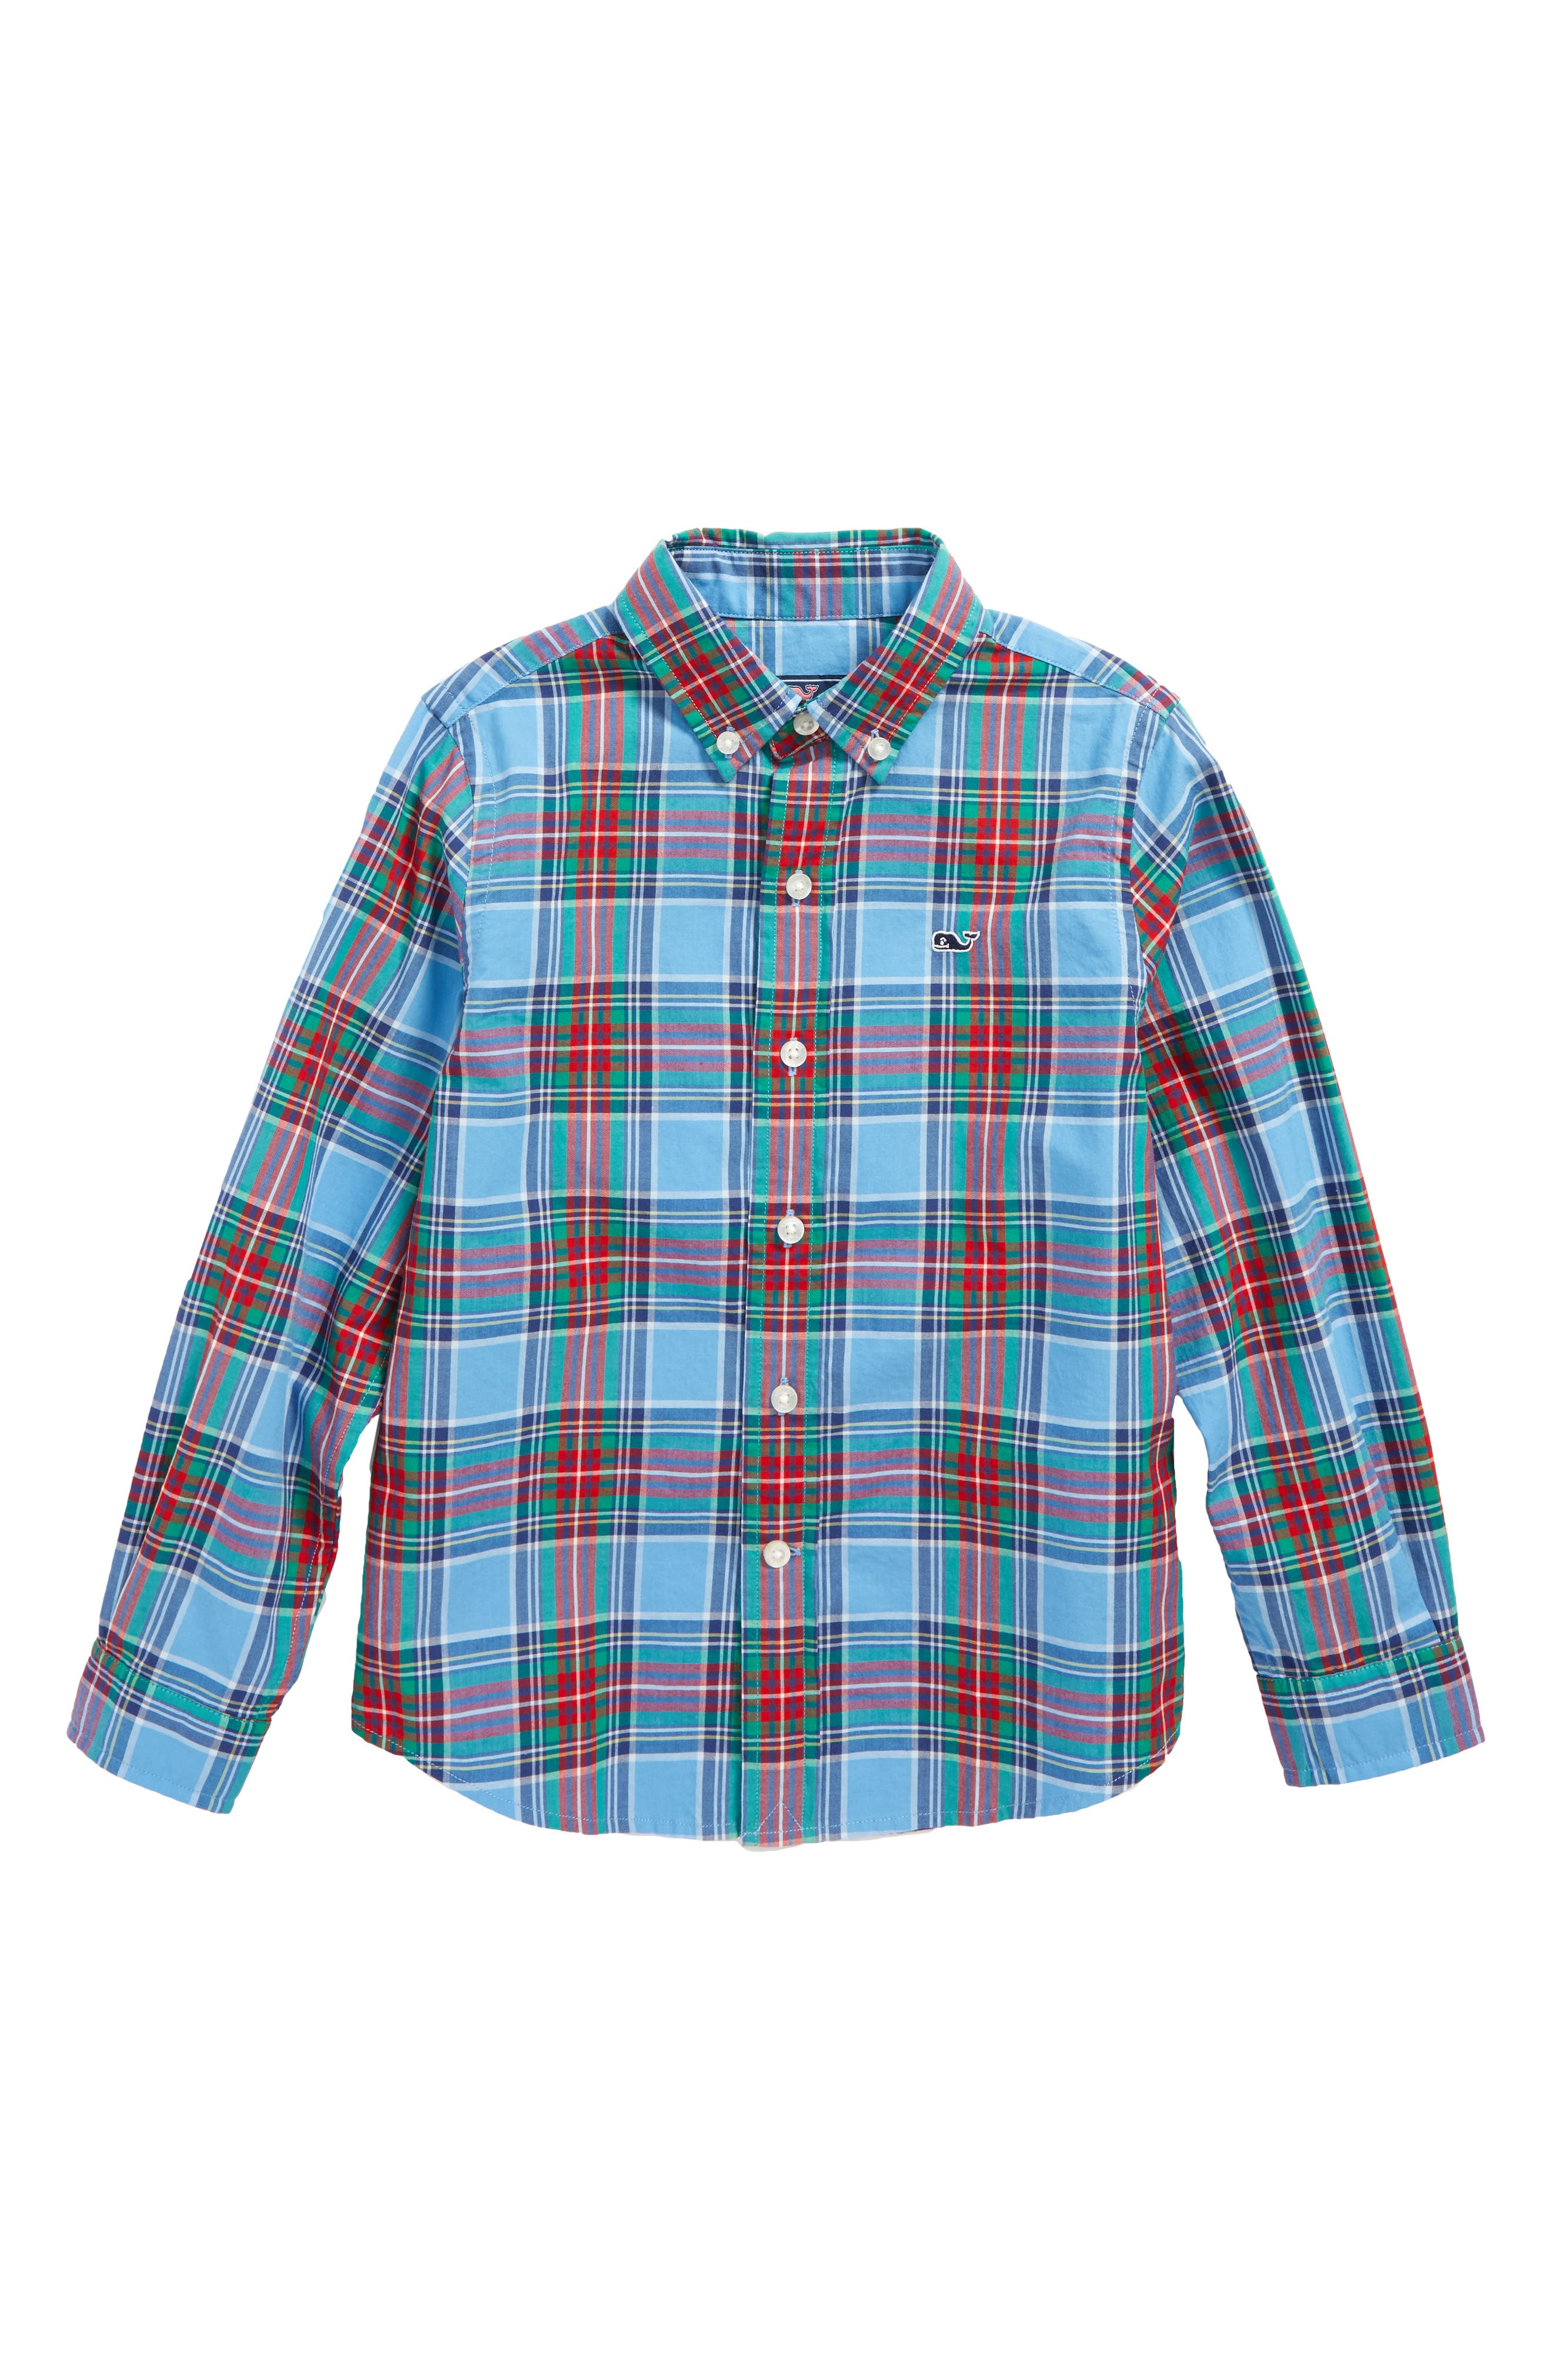 Belmont Plaid Whale Shirt,                         Main,                         color, Dockside Blue